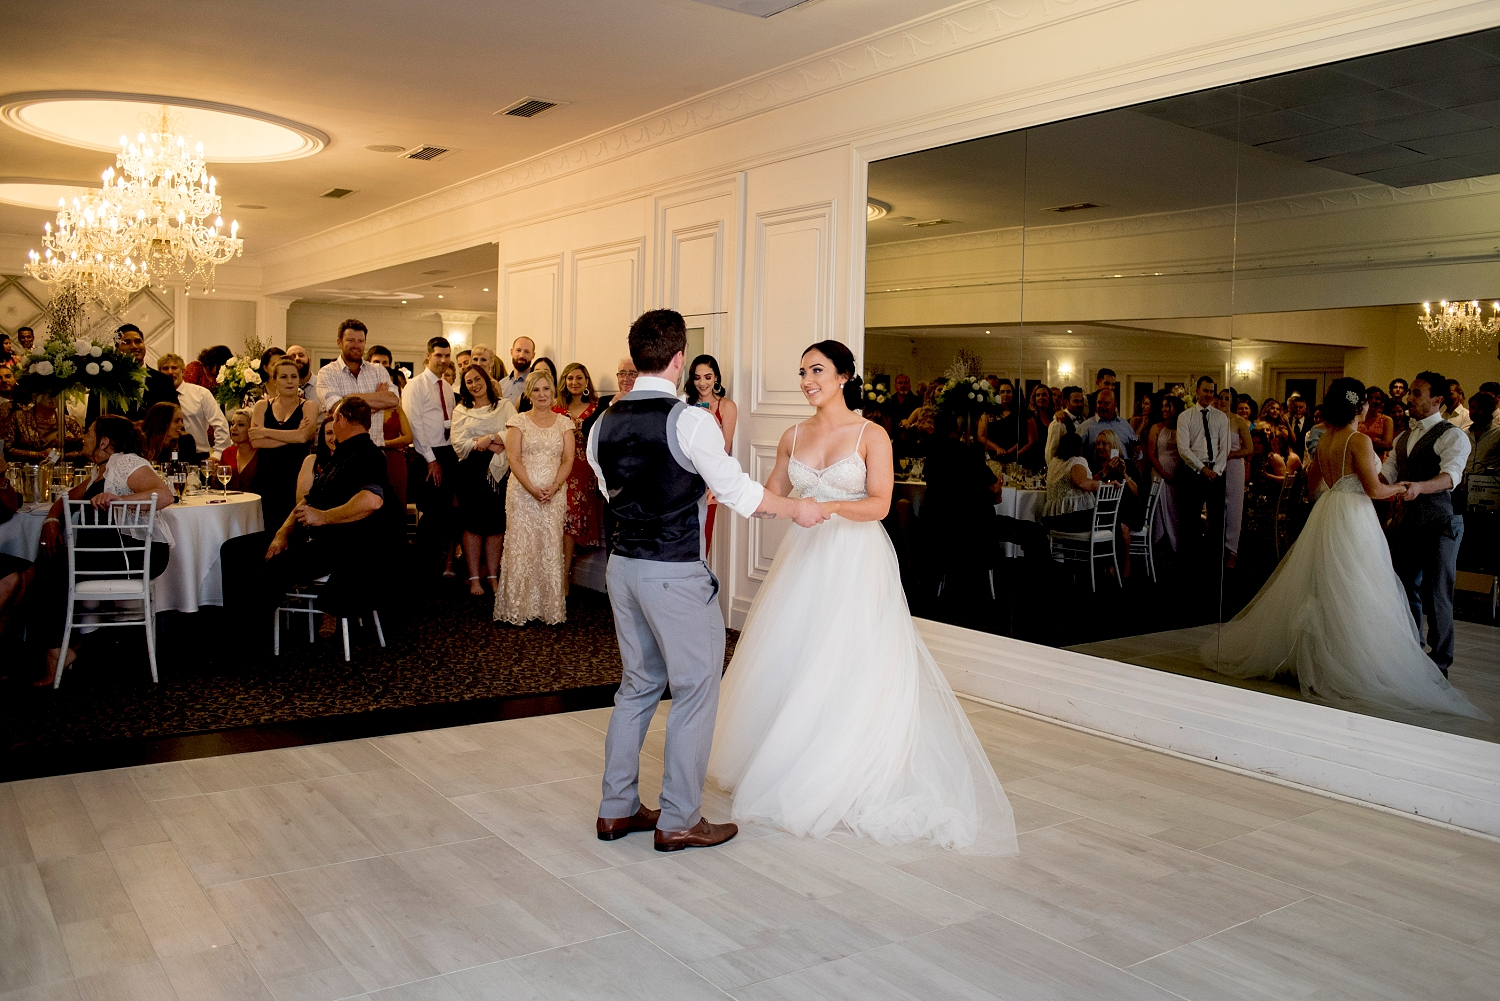 50_caversham house first dance wedding perth.jpg